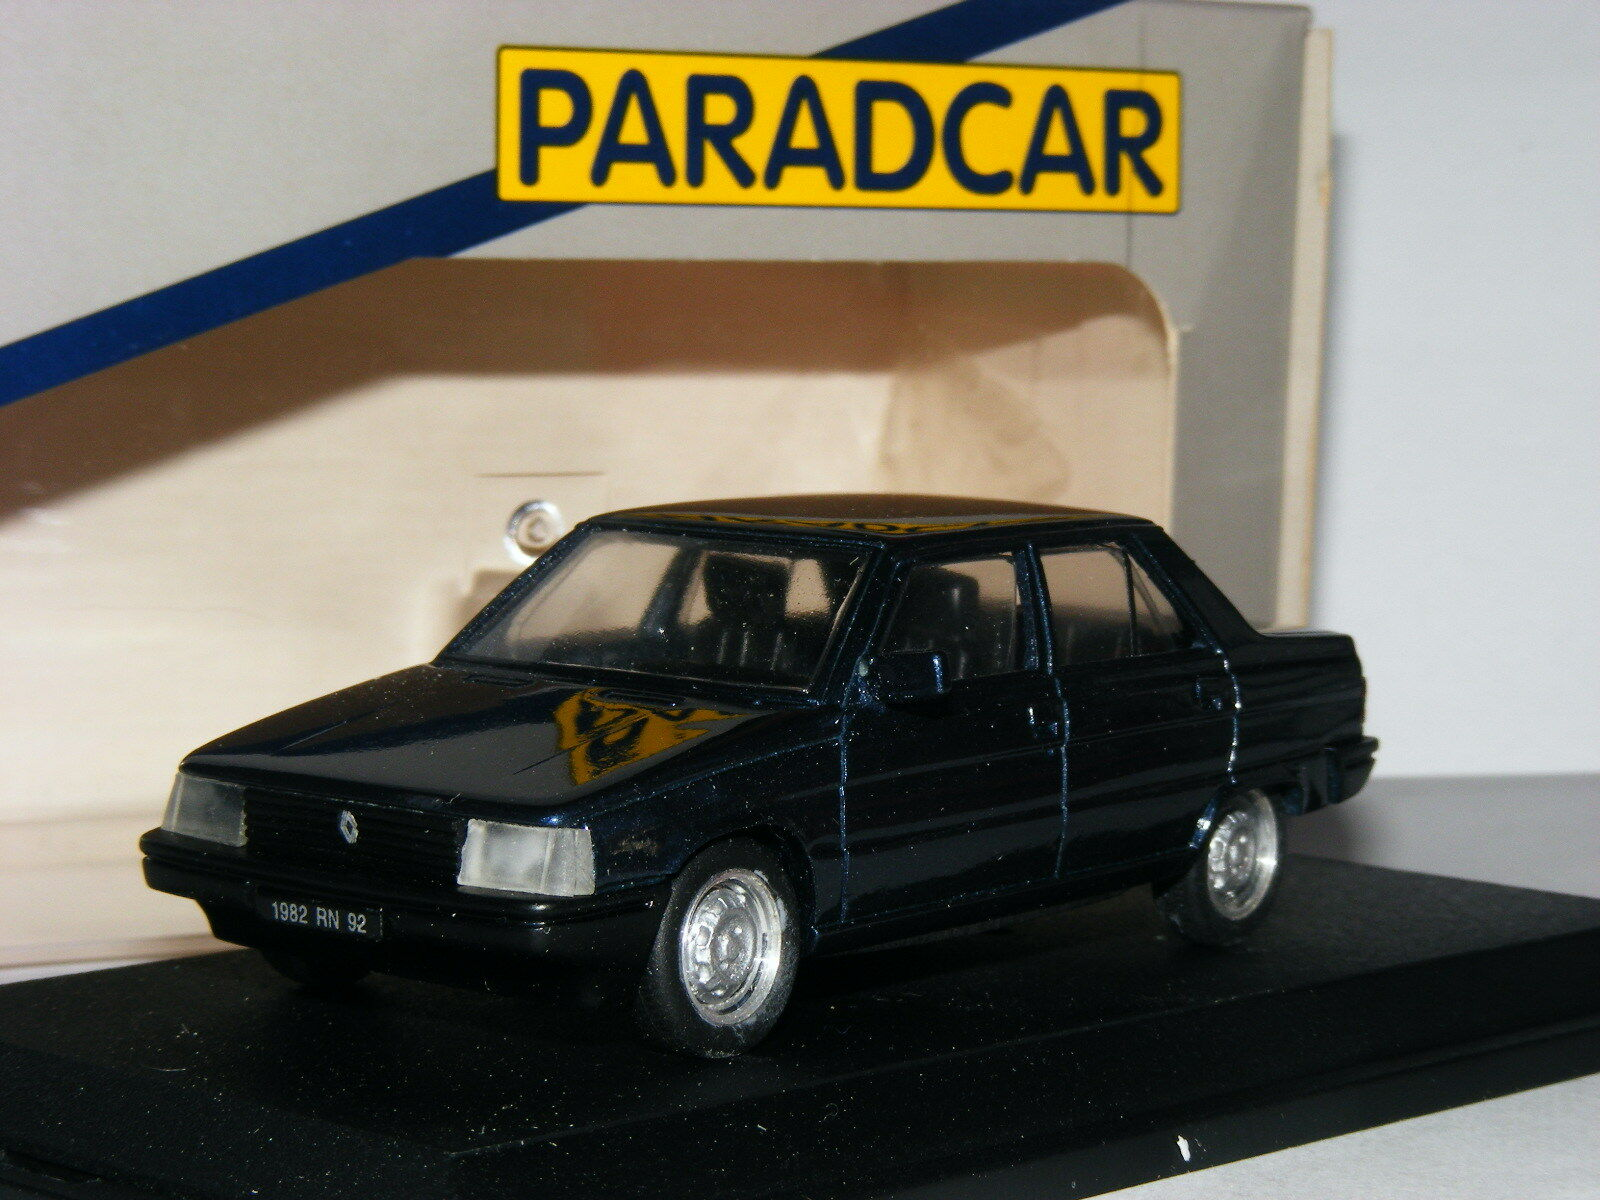 Paradcar 039 1982 Renault 9 4-Door Saloon Metallic bluee 1 43